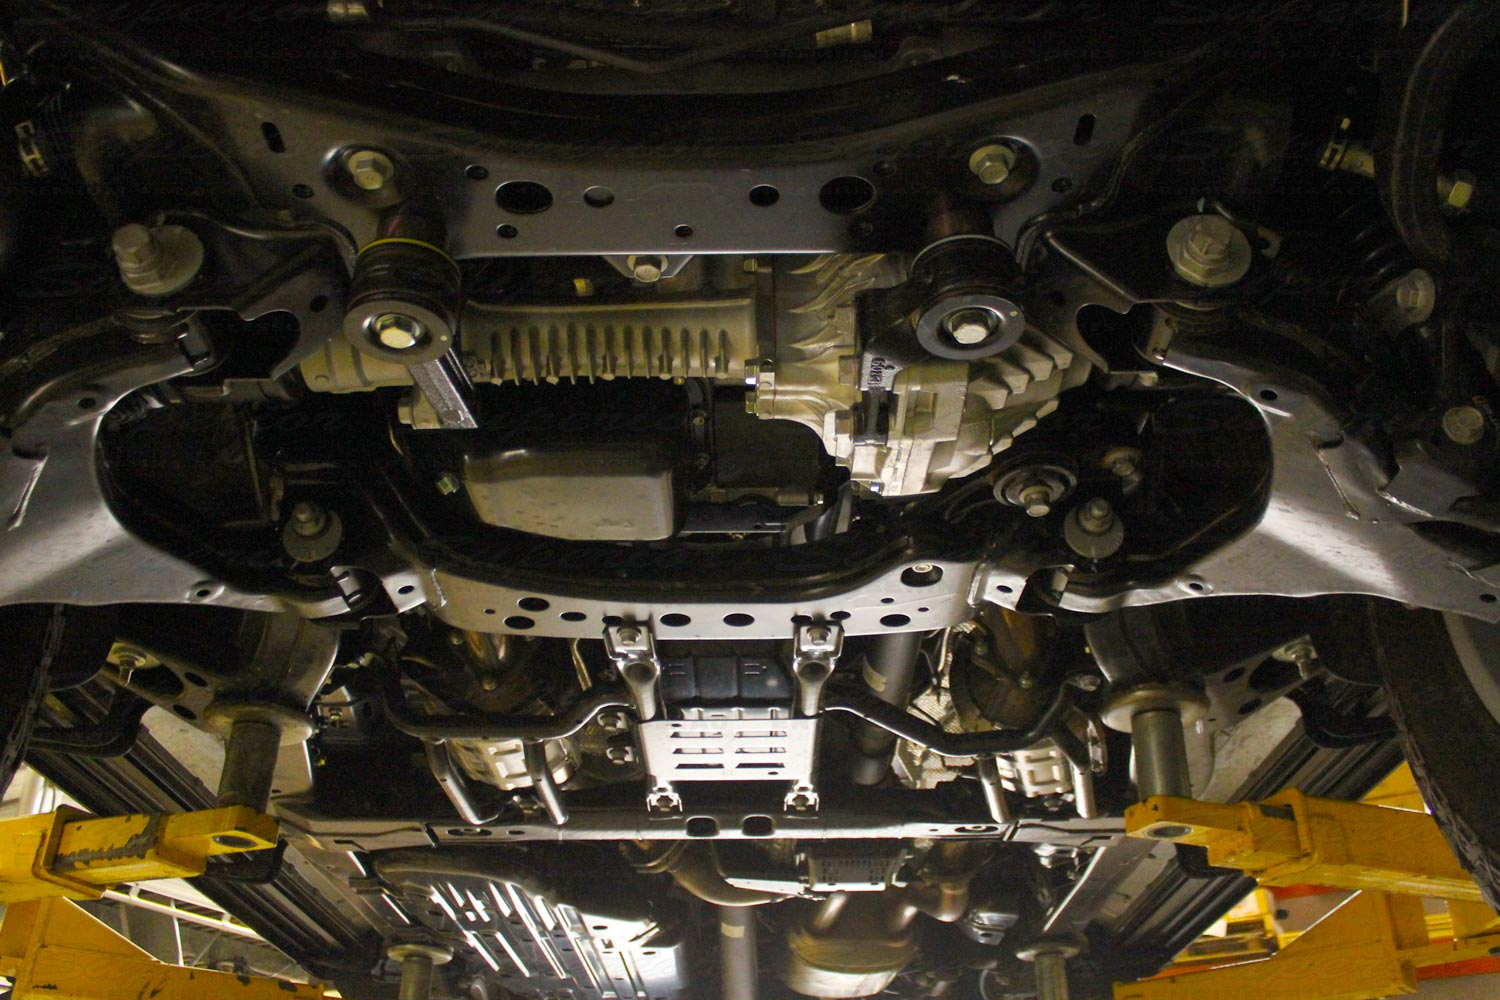 Superior Diff Drop Kit fitted to a Toyota Landcruiser 200 Series